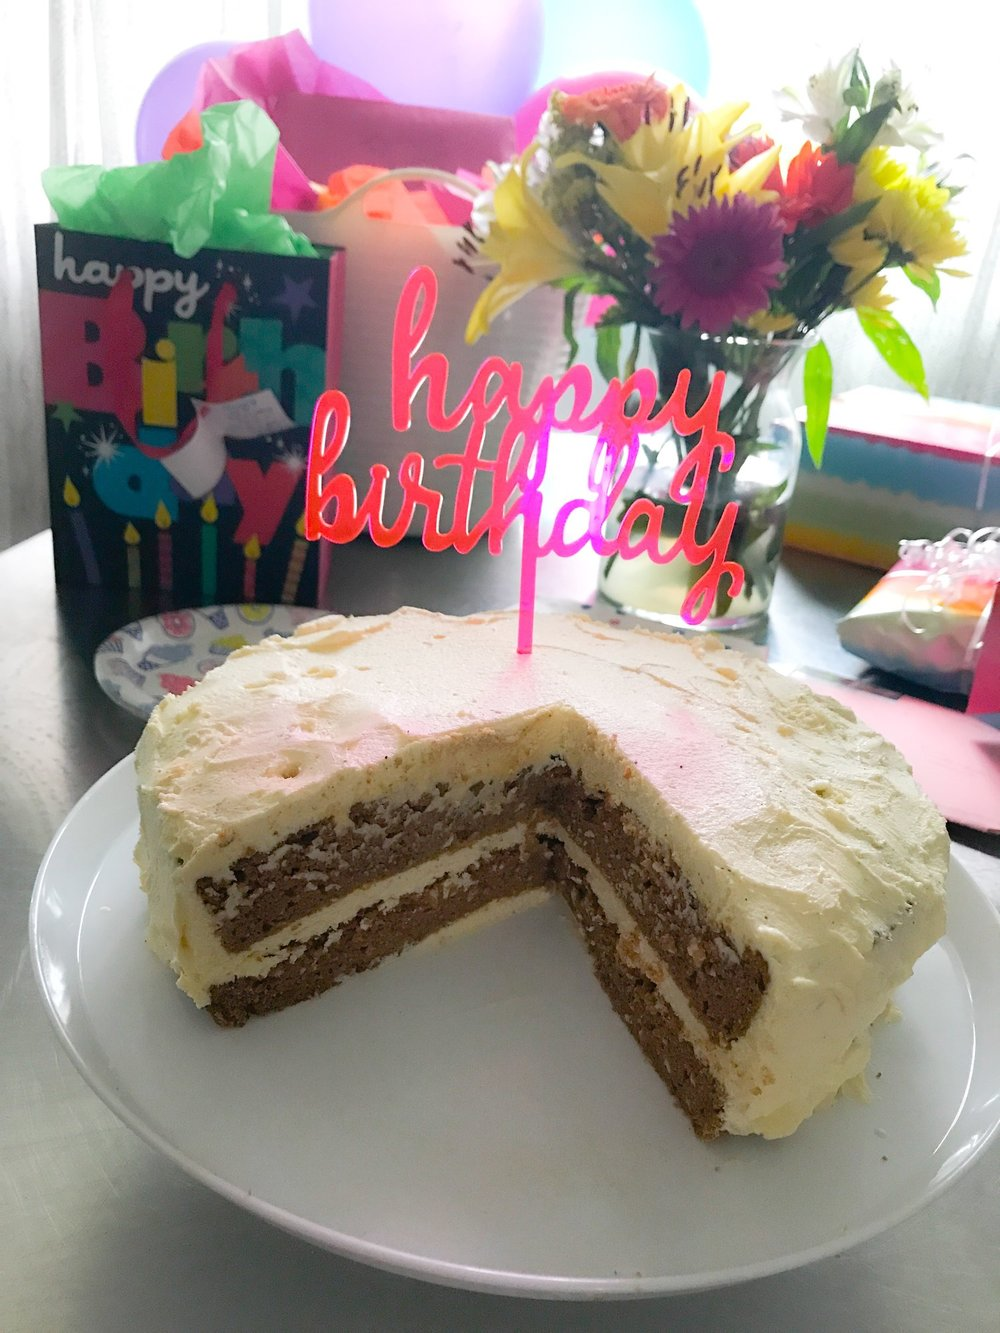 KETO / LOW CARB BIRTHDAY CAKE! Click photo for original post